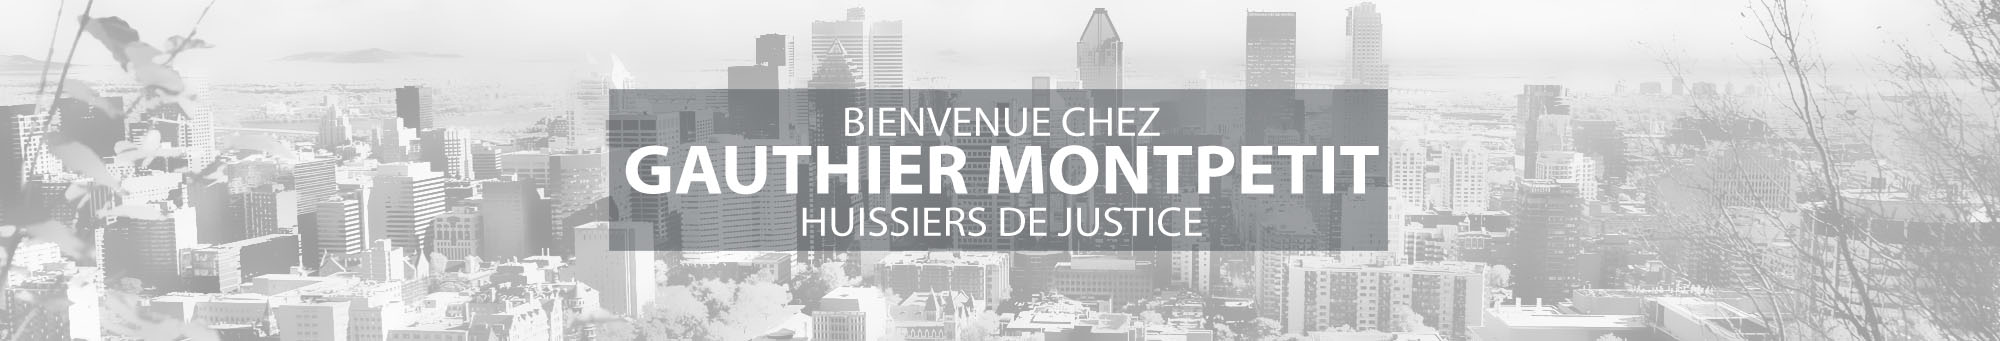 Gauthier Montpetit Huissiers